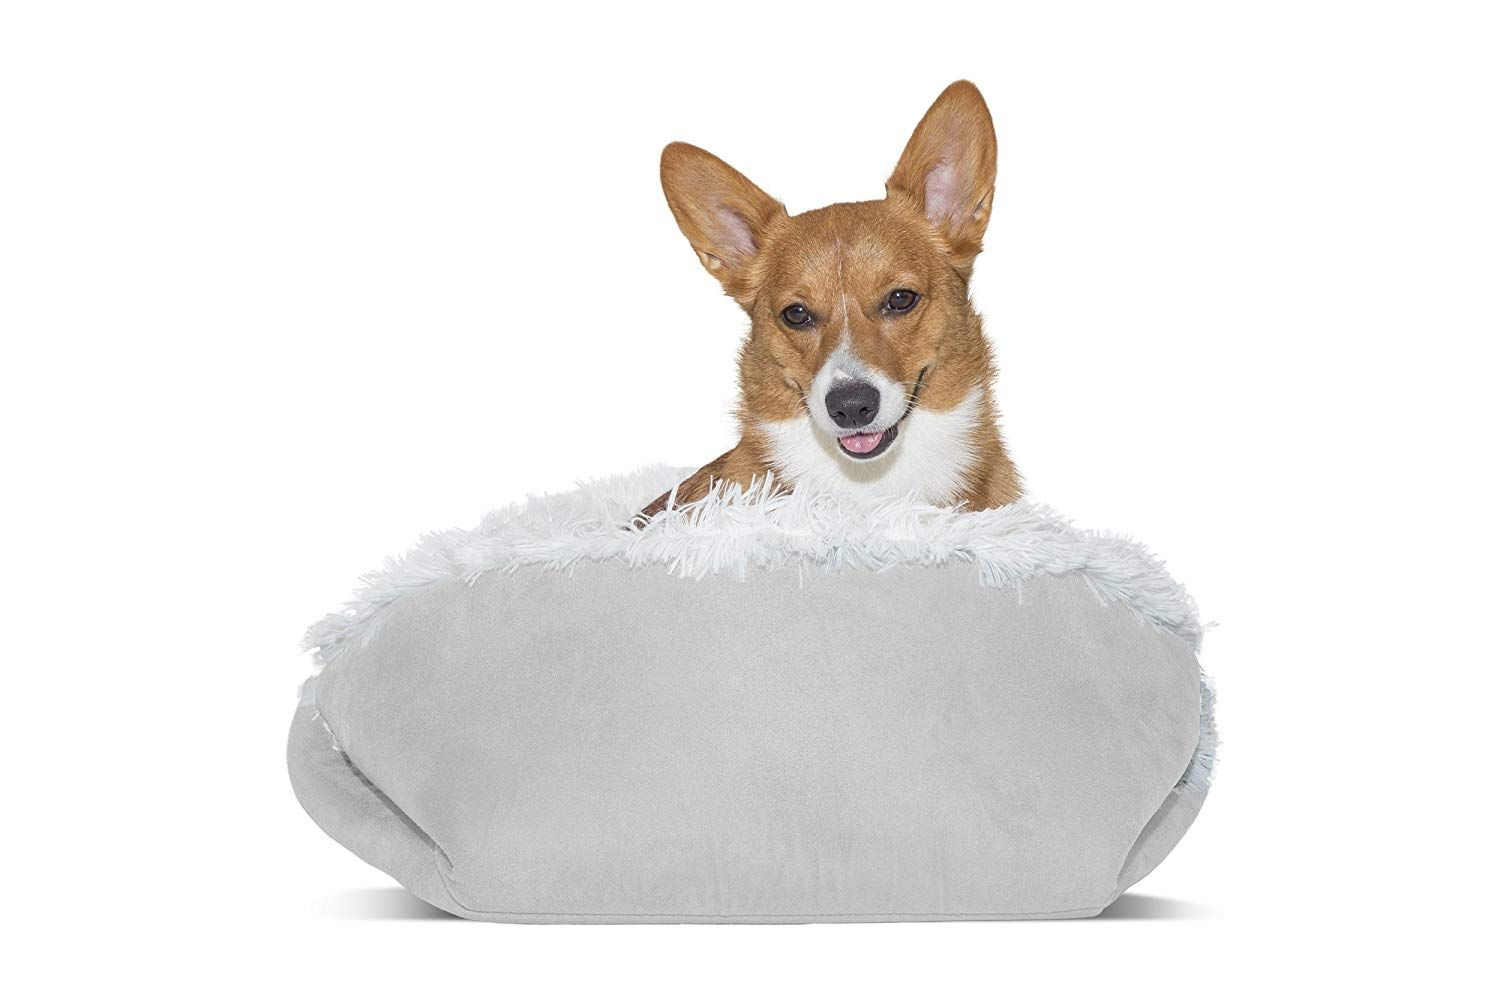 Furhaven Pet Dog Bed Convertible Self Warming Cuddle Pet Bed For Dogs And Cats Sizes Thanks A Lot For Seeing Our I Dog Pet Beds Cool Dog Beds Dog Stroller